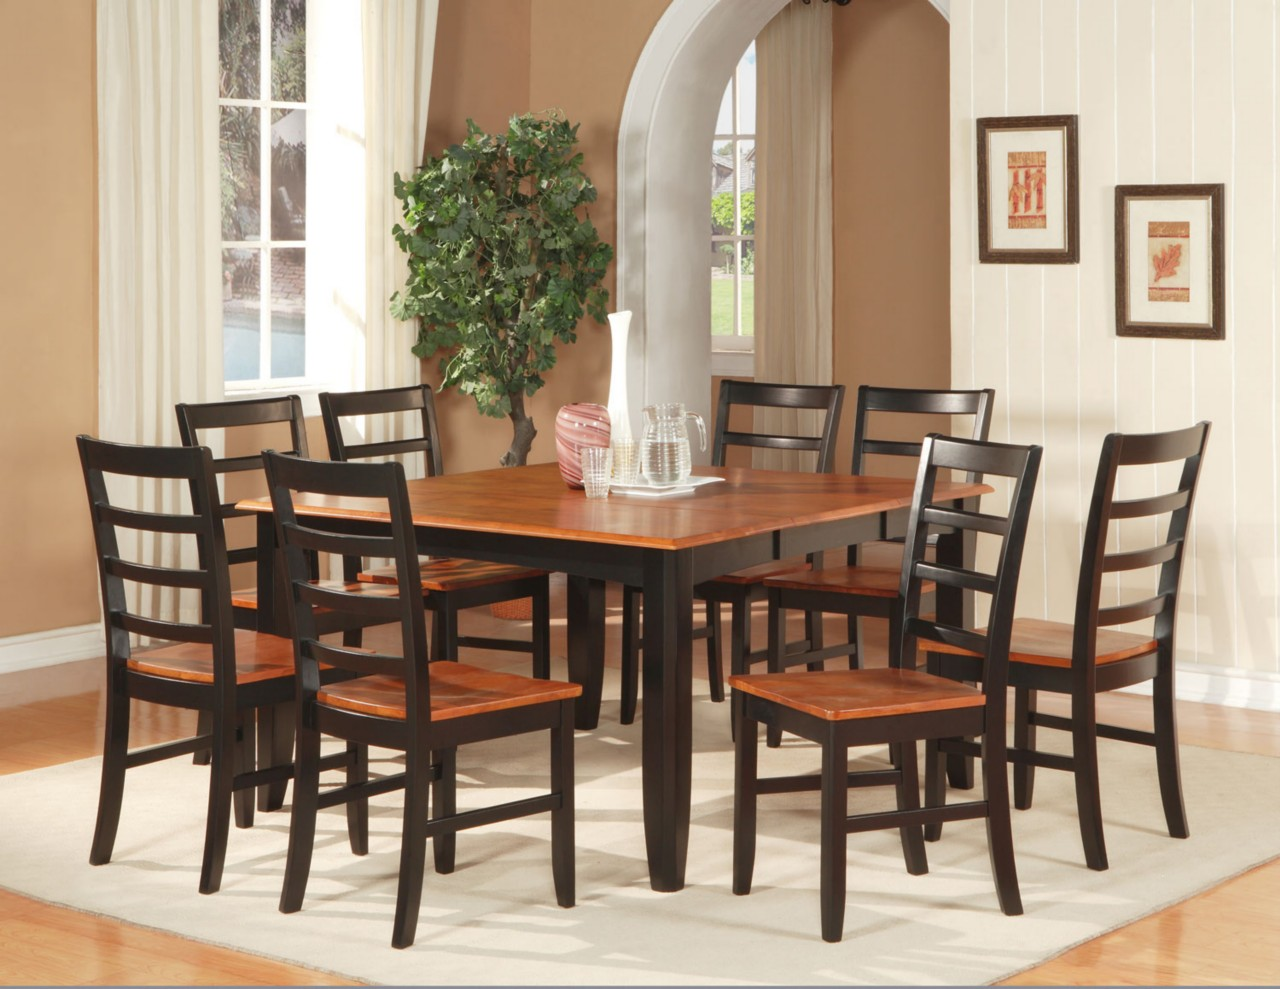 Remarkable Square Dining Room Table Sets 1280 x 989 · 216 kB · jpeg